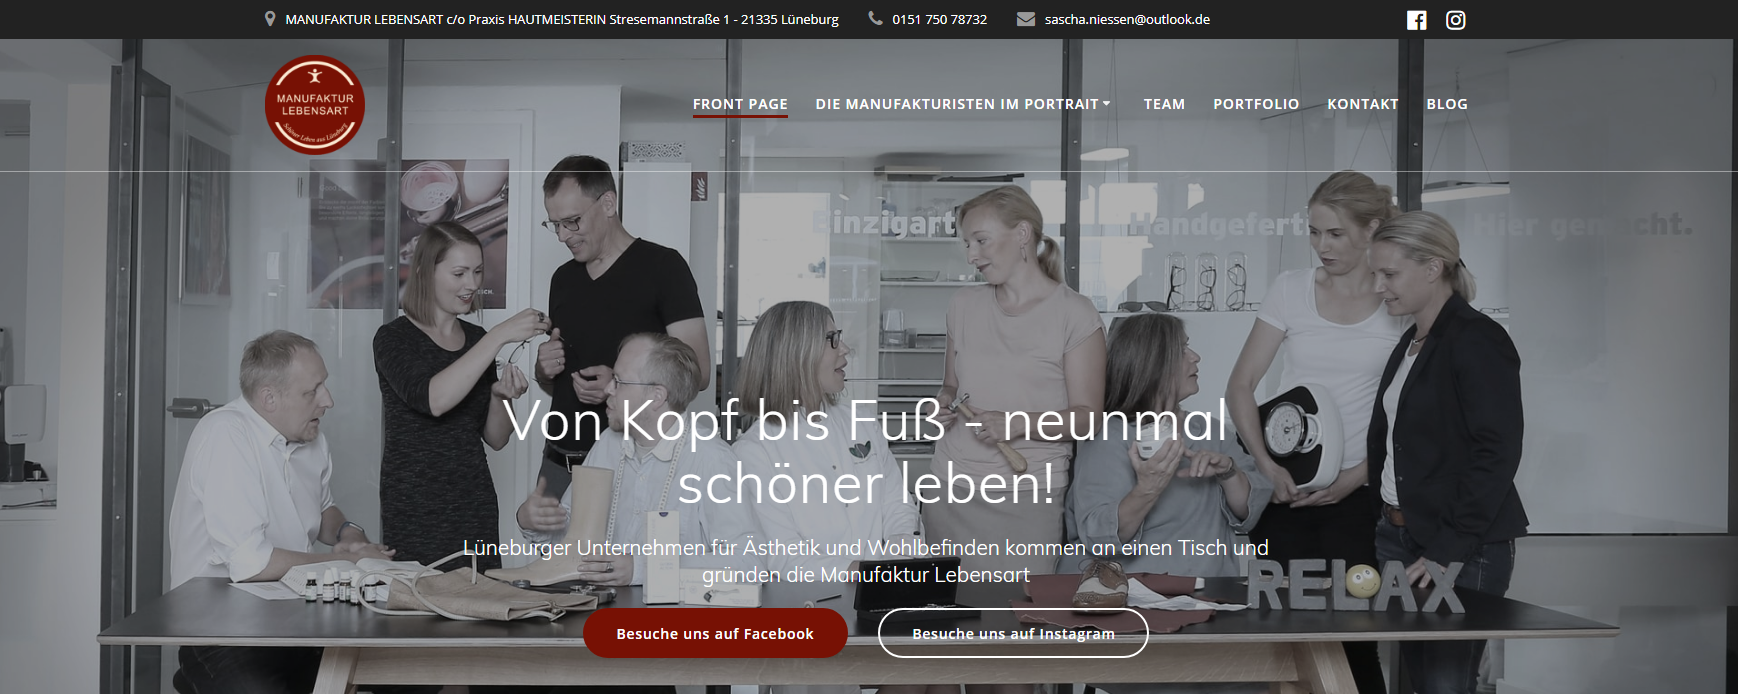 Friseur Coach - Christian Funk - Website Manufaktur